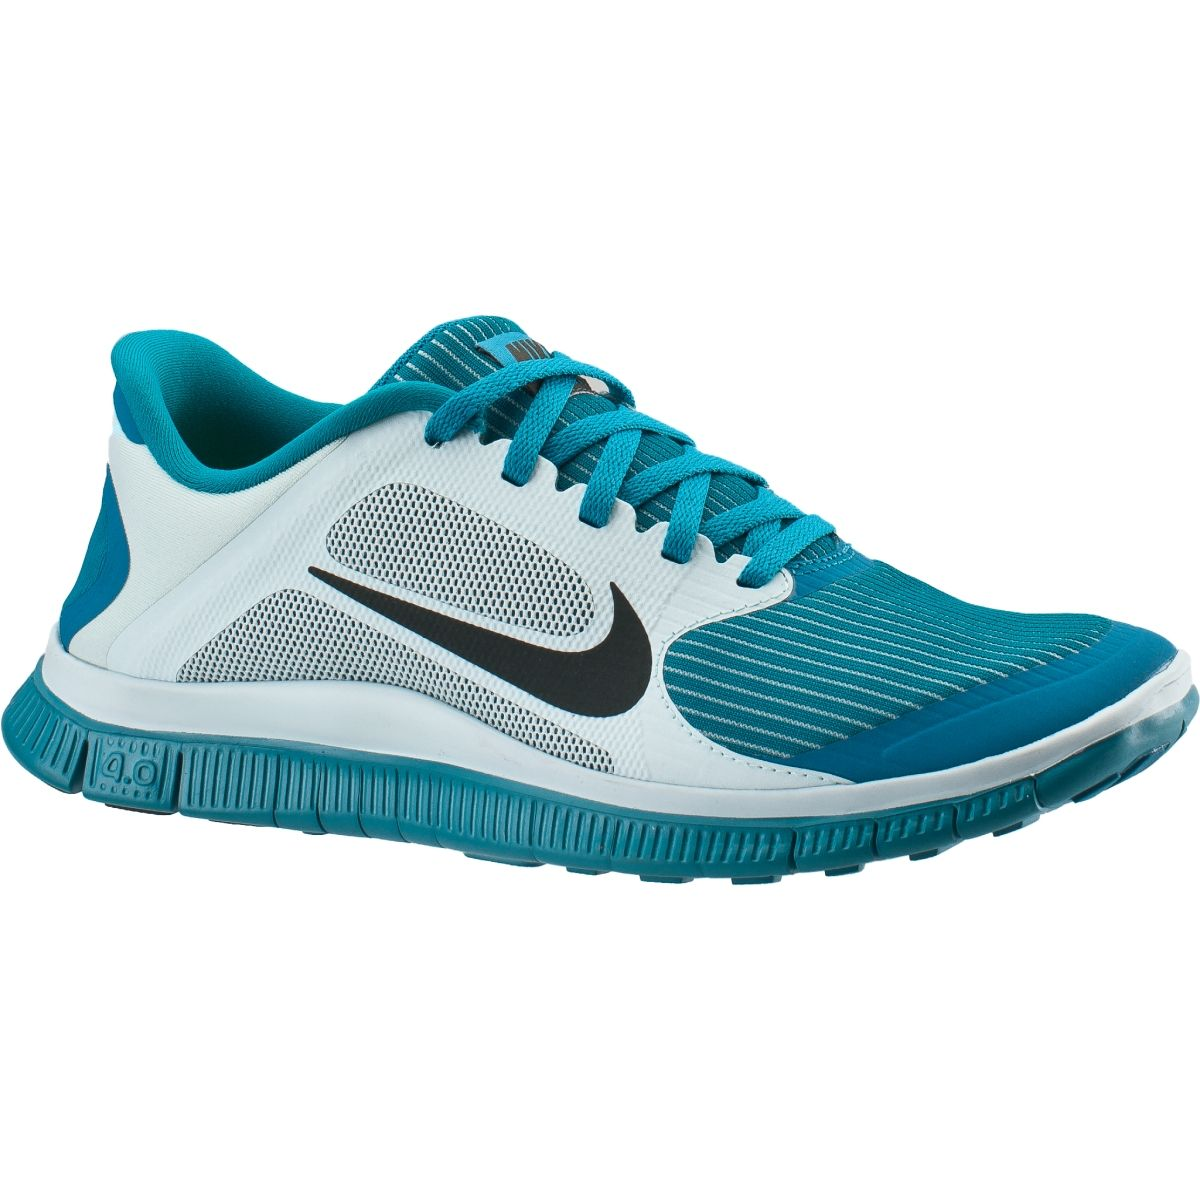 Nike Free 4.0V3 Running Shoes Womens - #freeruns20 #com full of nikes  sneakers